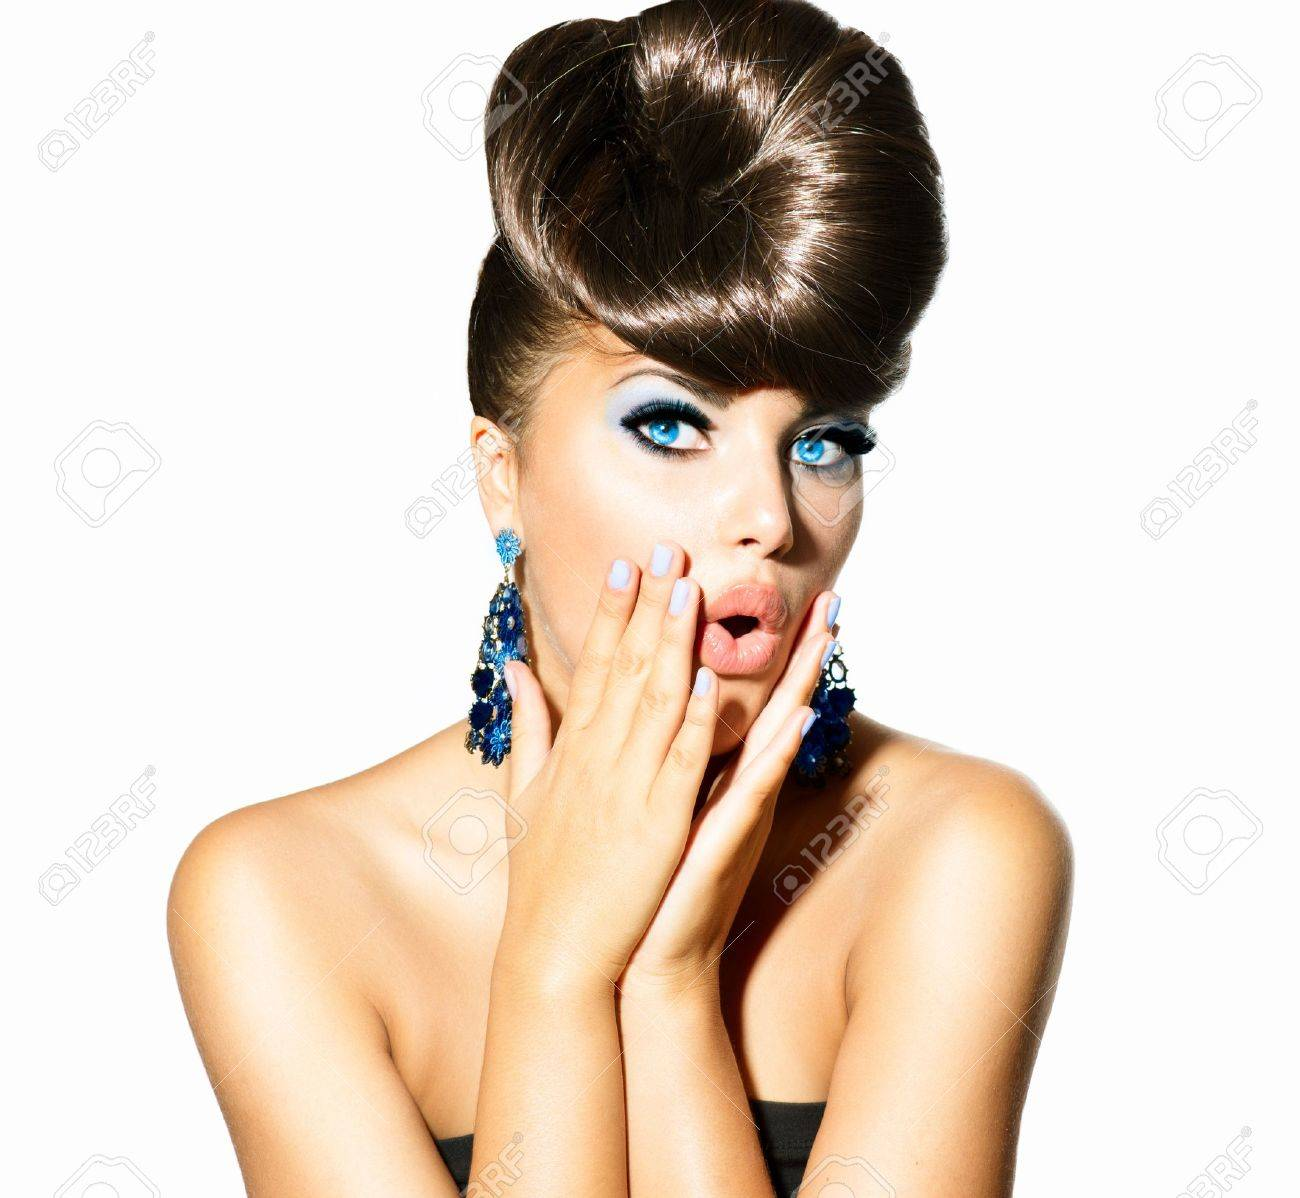 Fashion Model Girl Portrait with Blue Eyes  Creative Hairstyle Stock Photo - 21341943